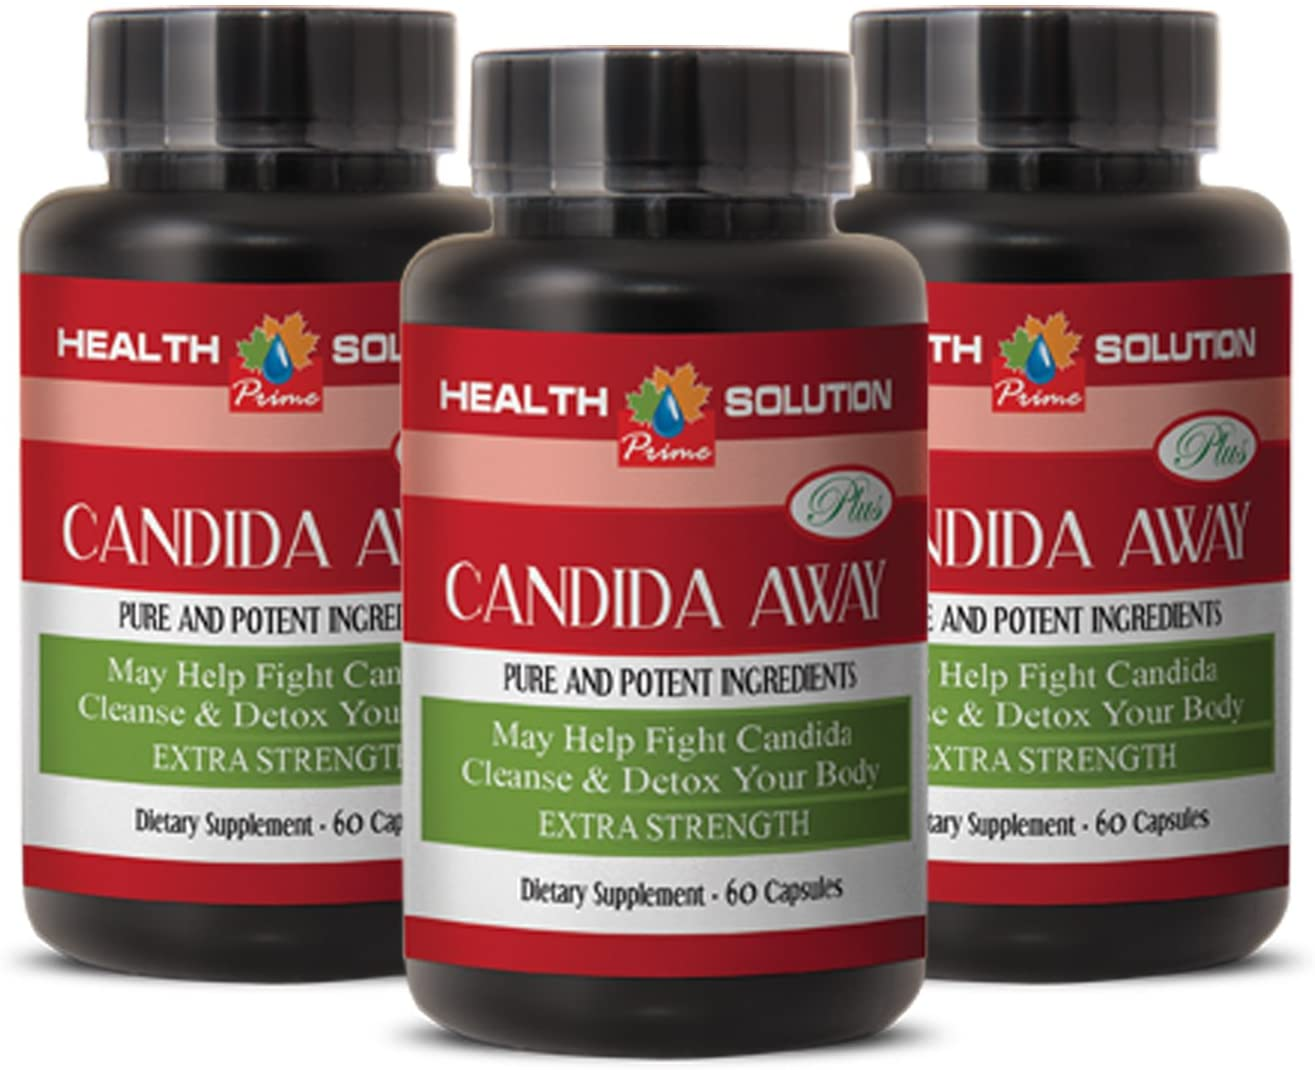 Immunity Support Supplement - Candida Away Plus - Candida Digestive - 3 Bottles 180 Capsules